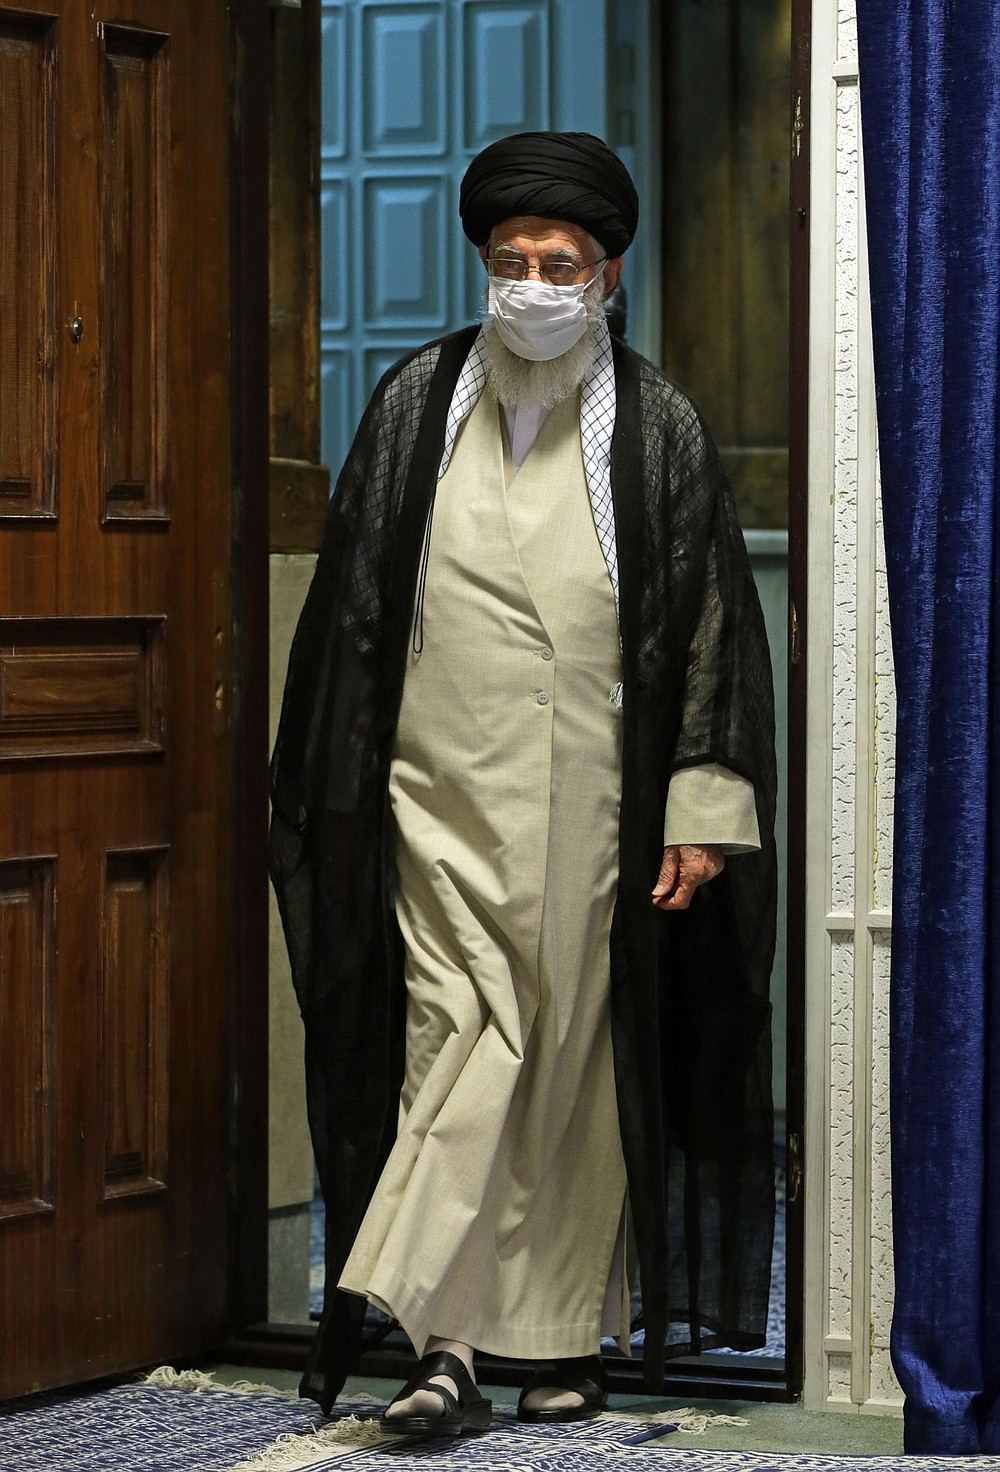 """In this picture released by the official website of the office of the Iranian supreme leader, Supreme Leader Ayatollah Ali Khamenei wearing a protective face mask to help prevent spread of the coronavirus arrives to attend a video conference with education ministry officials in Tehran, Iran, Tuesday, Sept. 1, 2020. Iran's supreme leader called the United Arab Emirates' recognition of Israel """"treason that will not last for long."""" (Office of the Iranian Supreme Leader via AP)"""